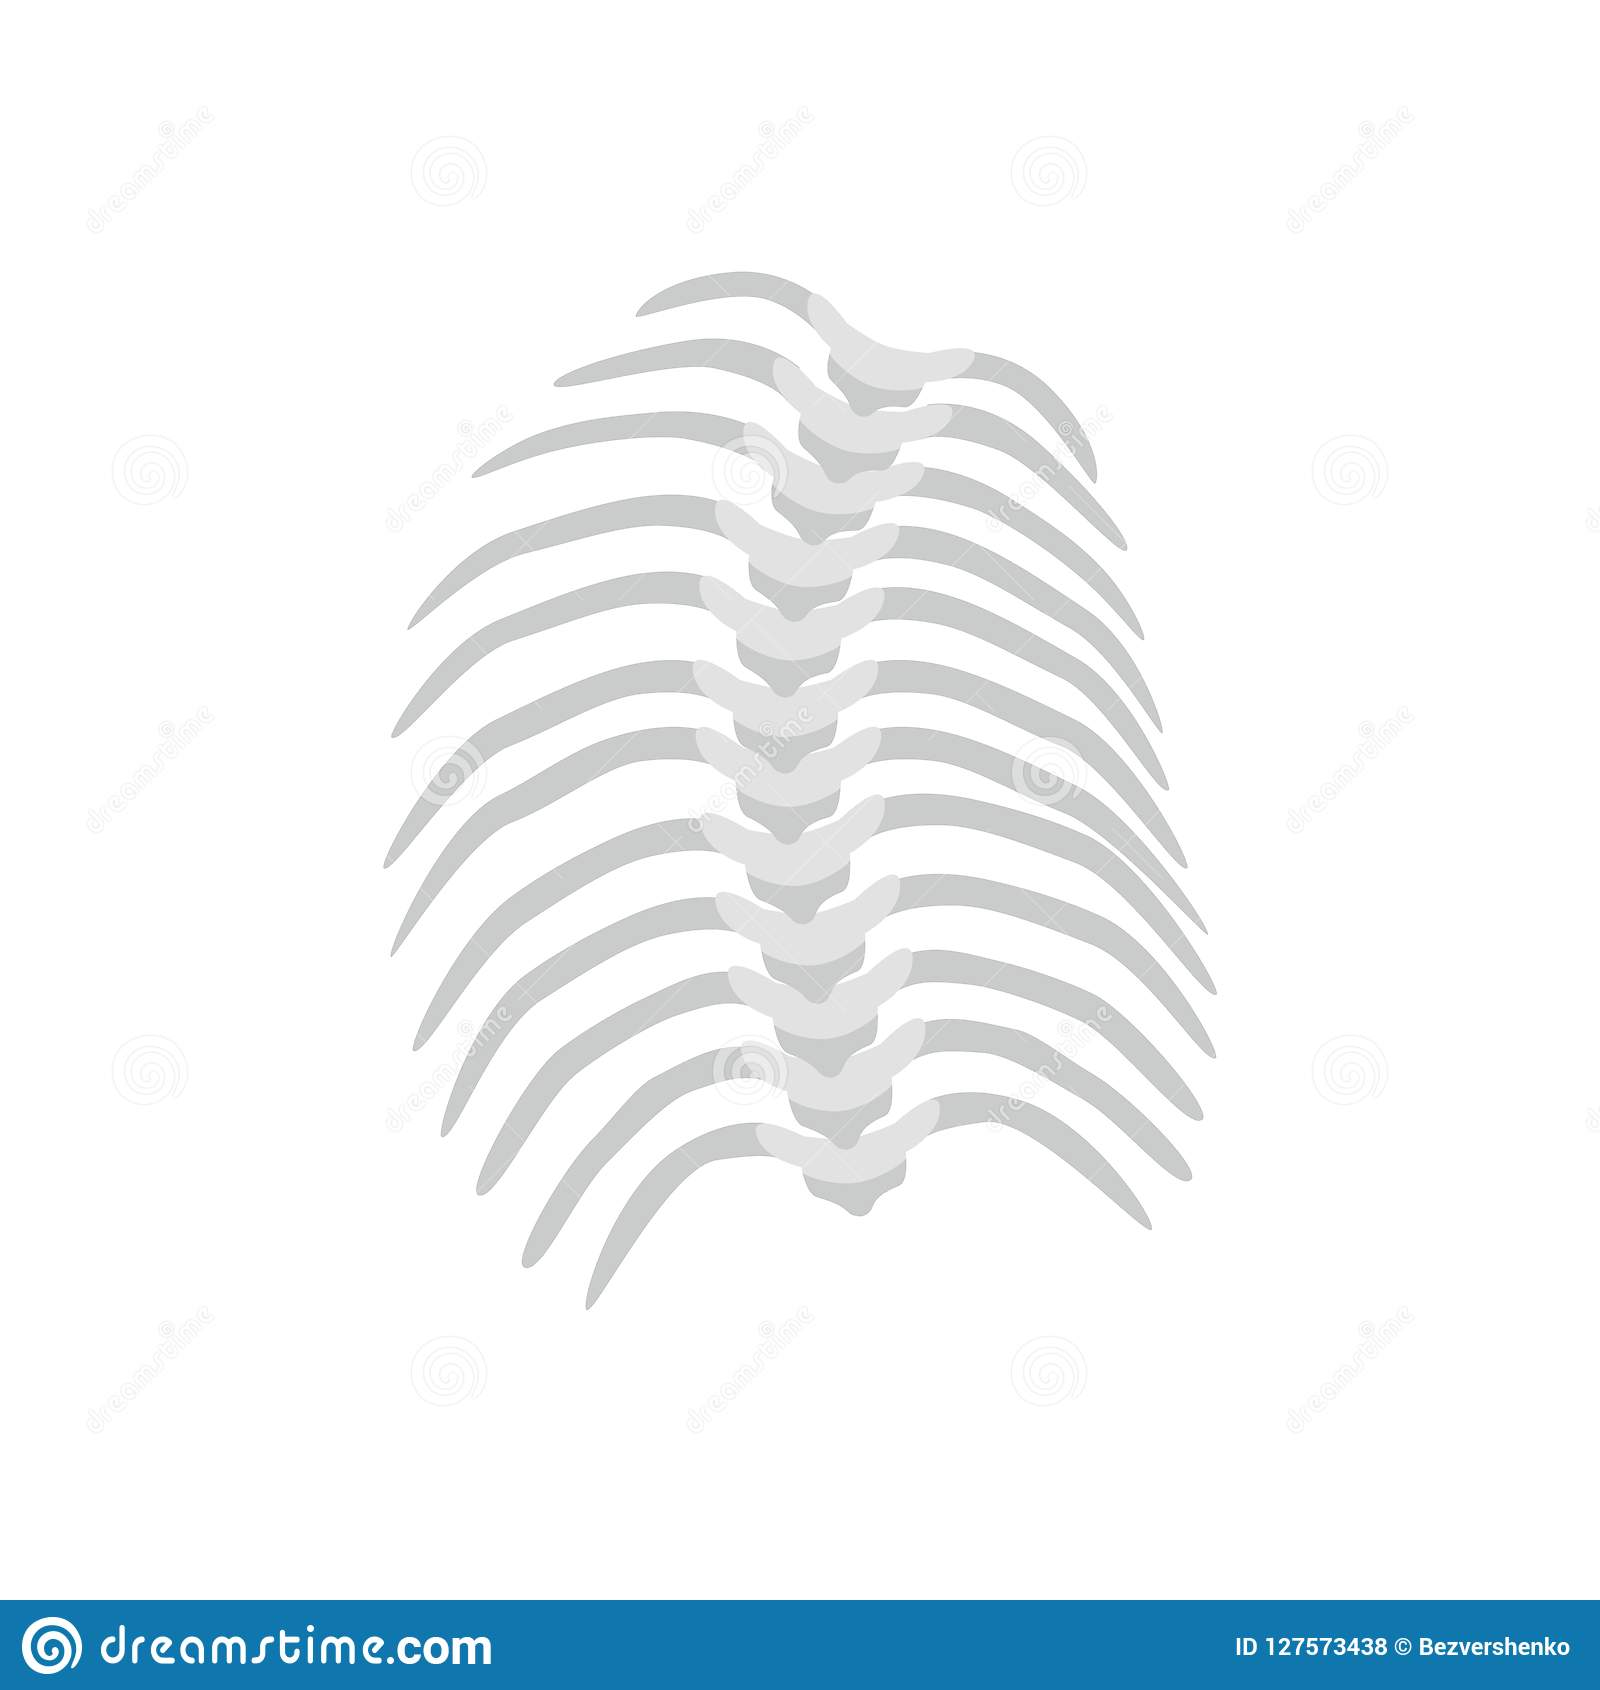 Thoracic Scoliosis on the thoracic spine and curved backbone concept vector illustration in flat design isolated on